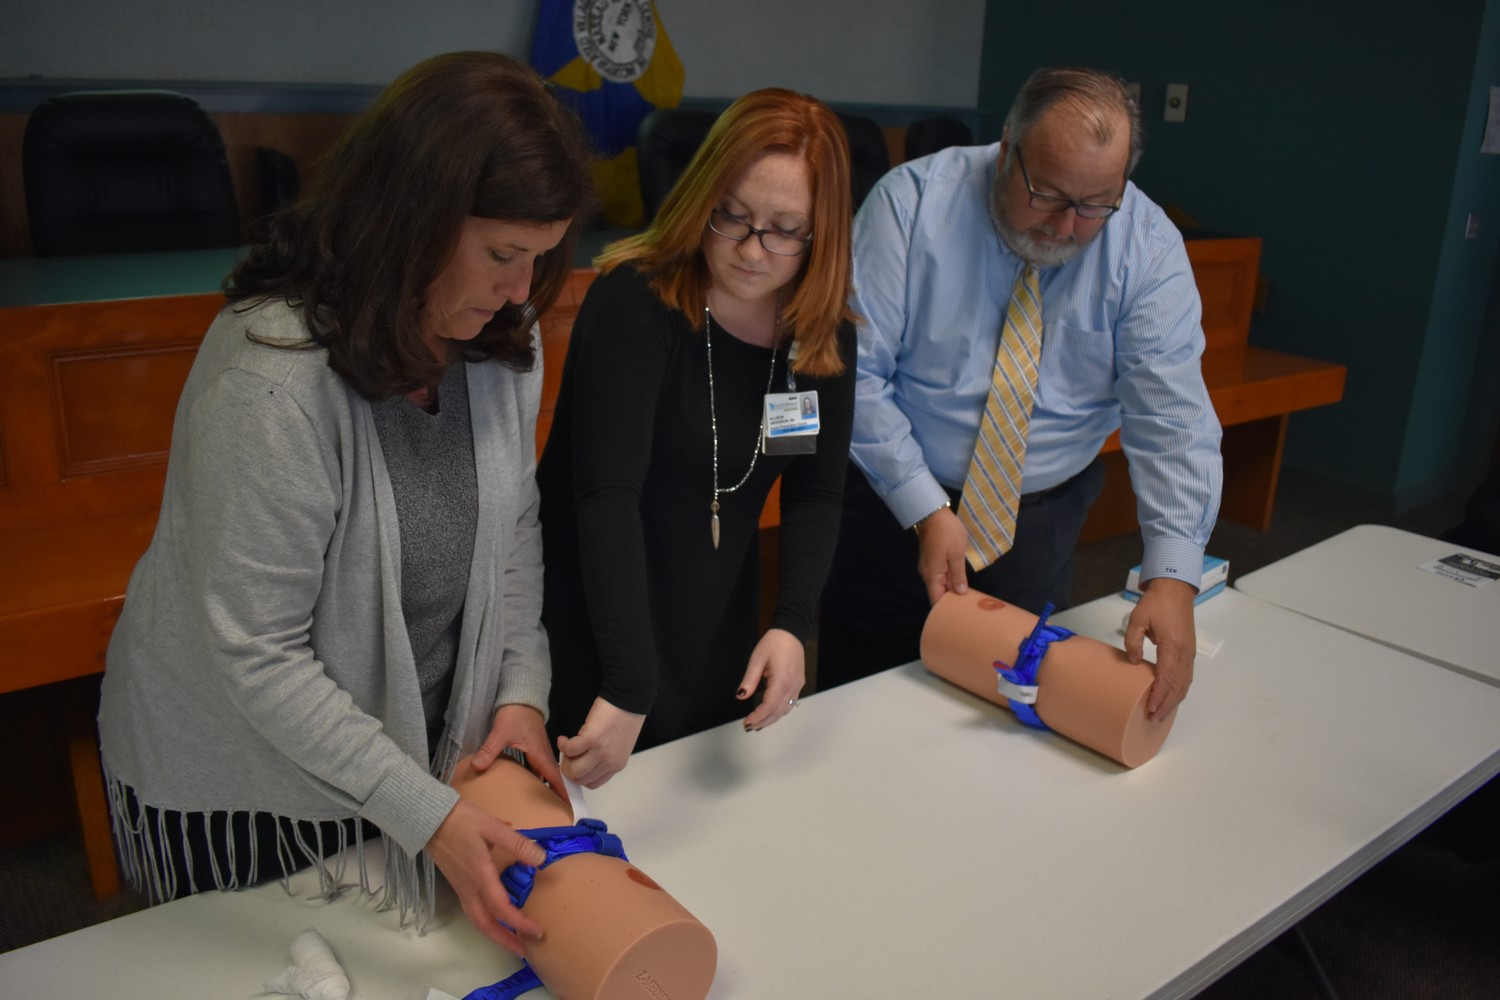 Allison Anderson, center, directed Deputy Mayor Kathy Baxley, left, and Mayor Francis Murray, right, how to stop the bleeding on life-threatening wounds.